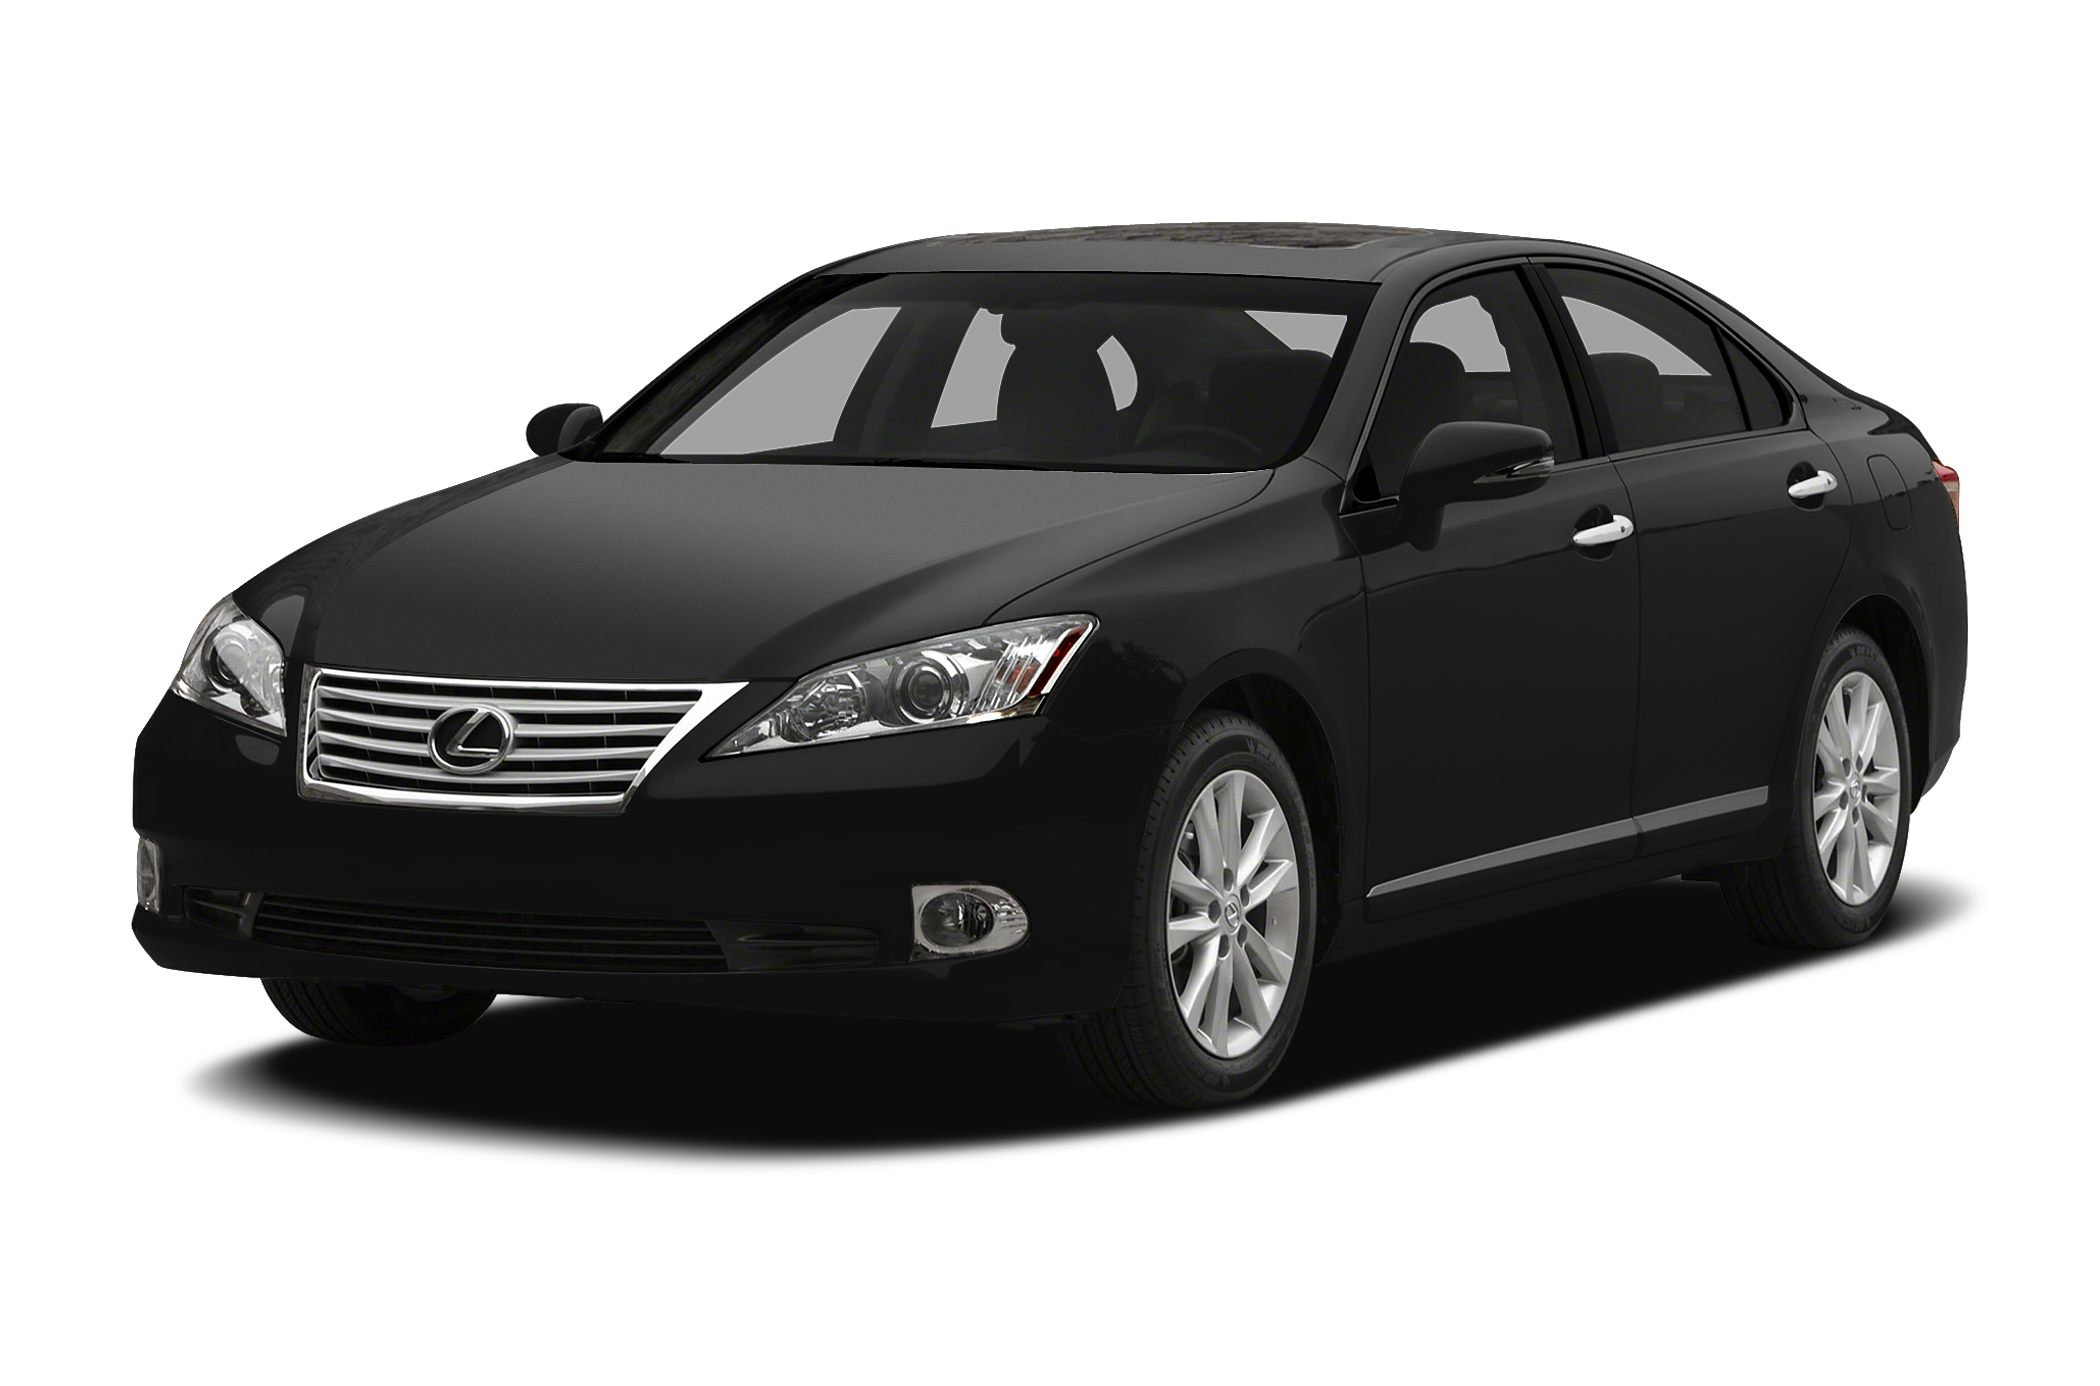 2010 Lexus ES 350 Base New Arrival Bluetooth SunroofMoonroof Satellite Radio Keyless Entry T